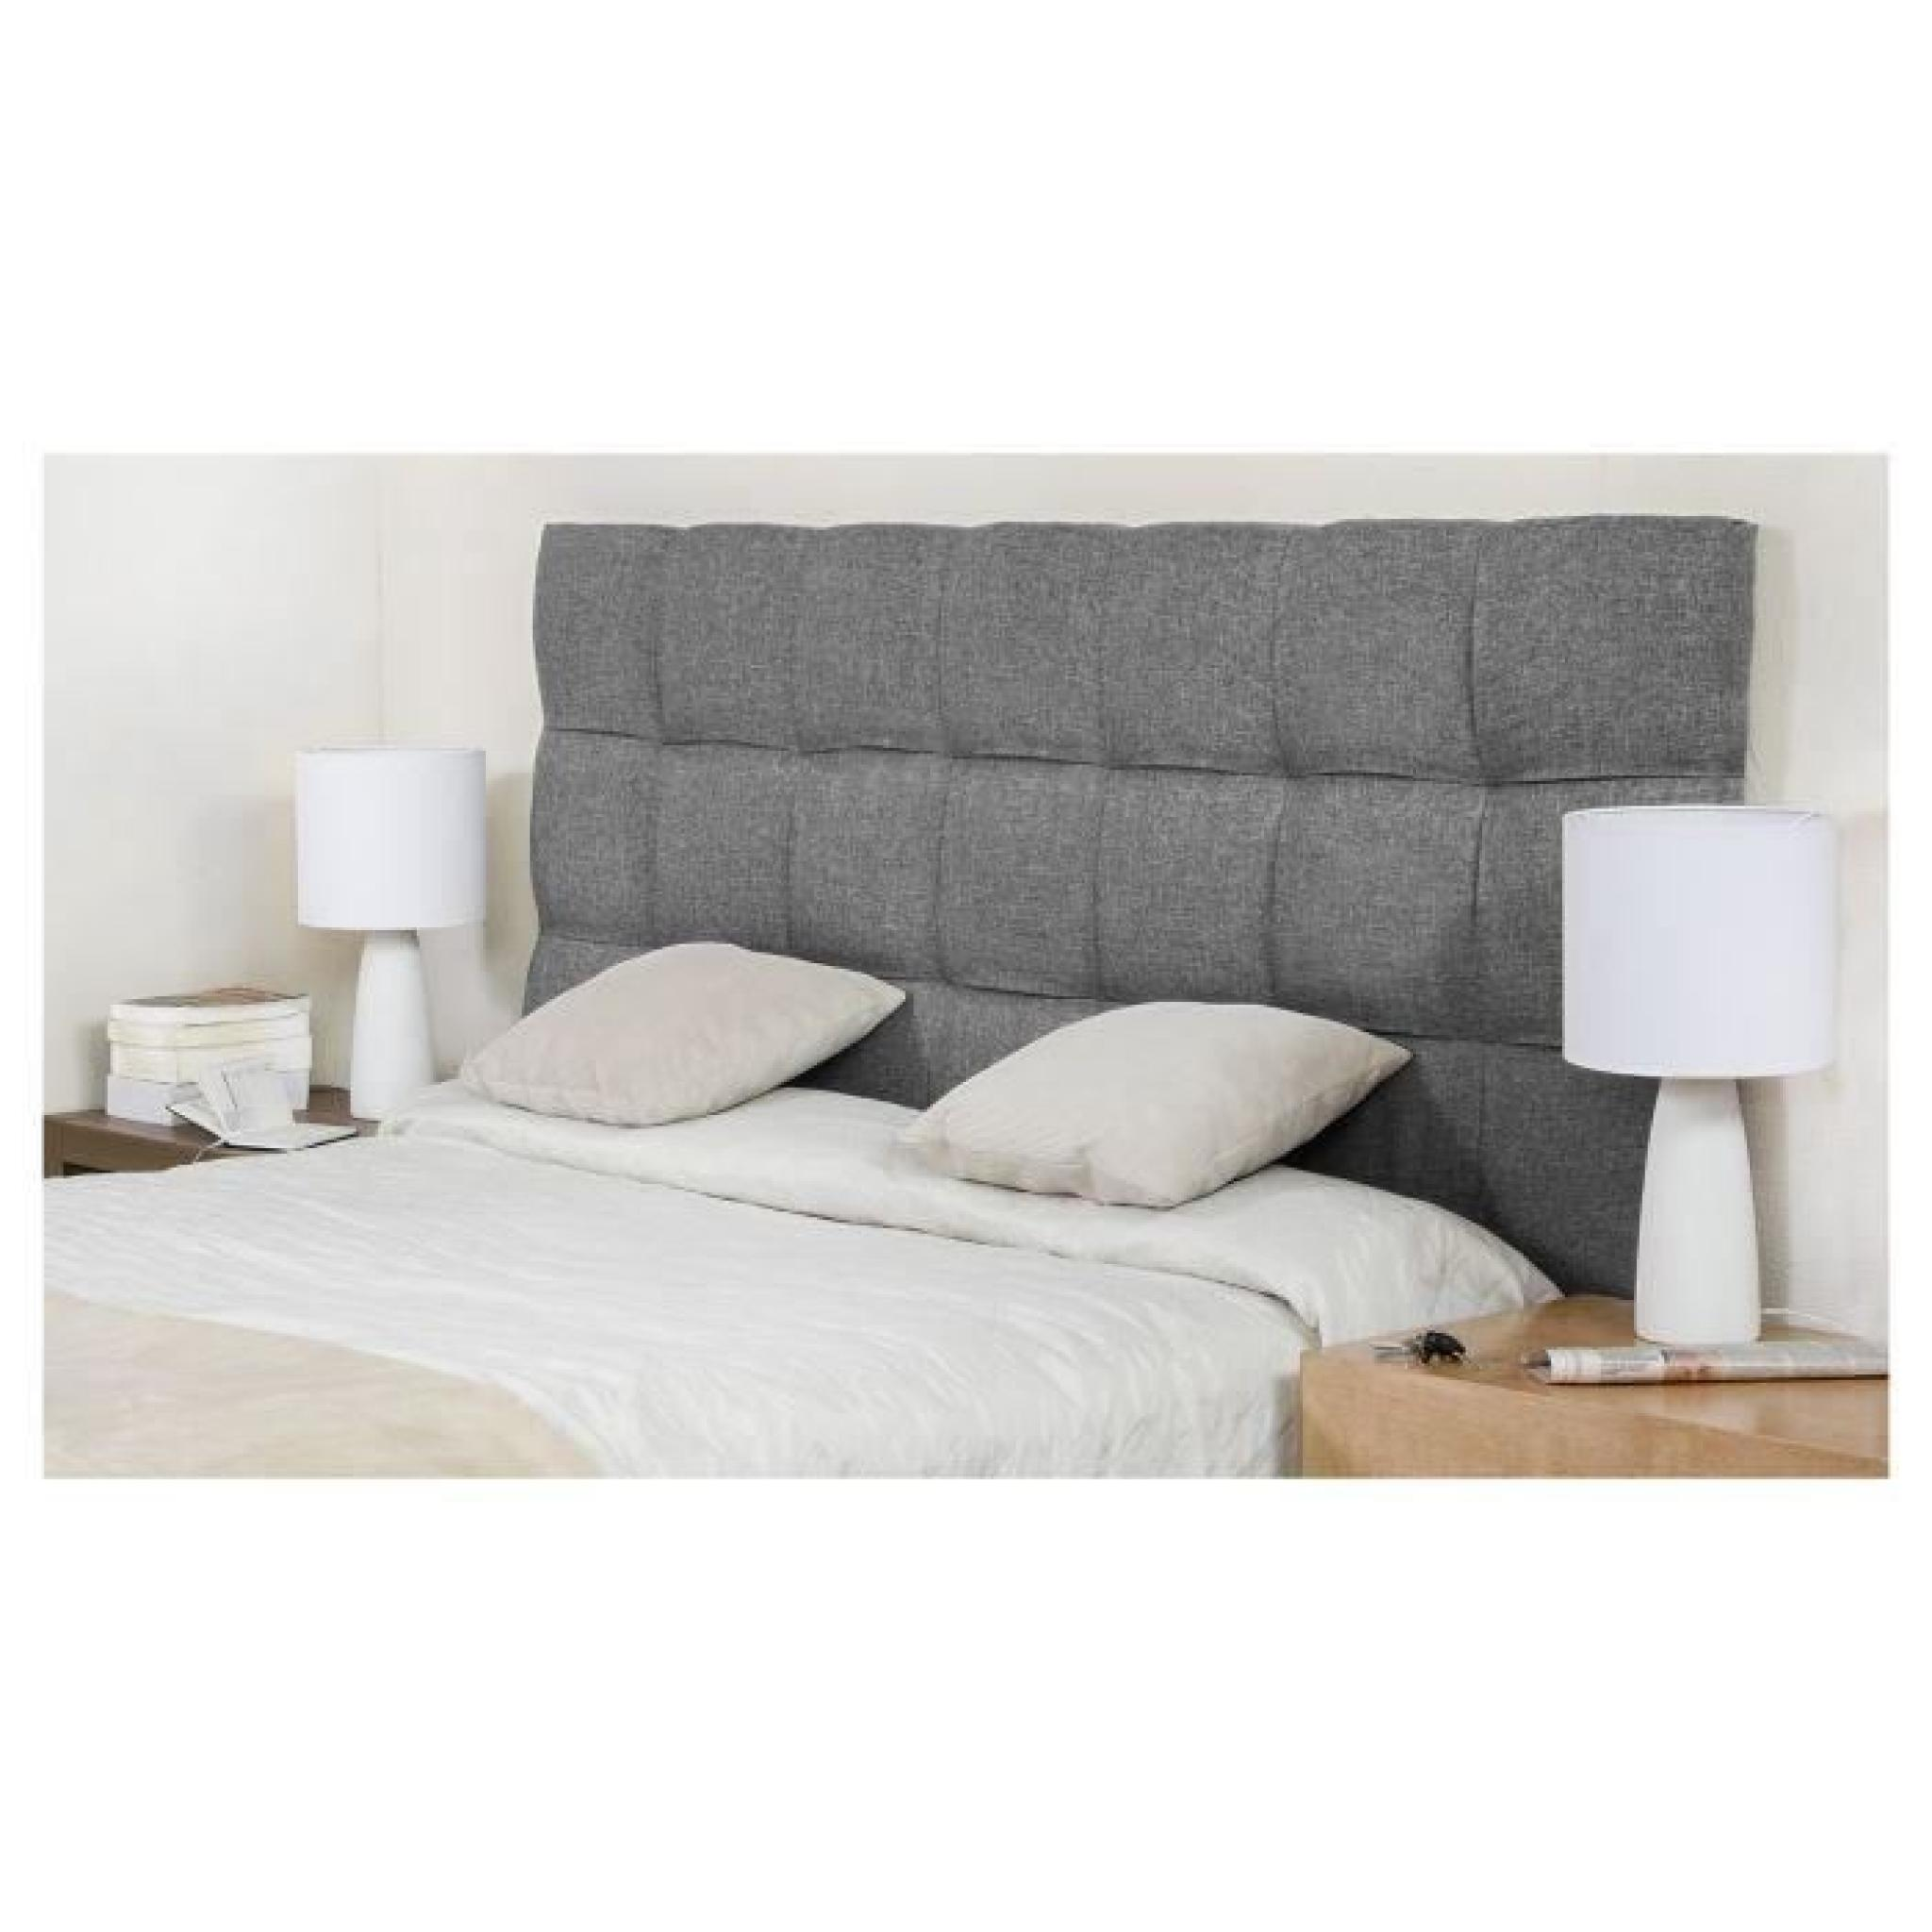 Finlandek t te de lit kyn adulte 160cm gris clair achat for Chambre design adulte photo